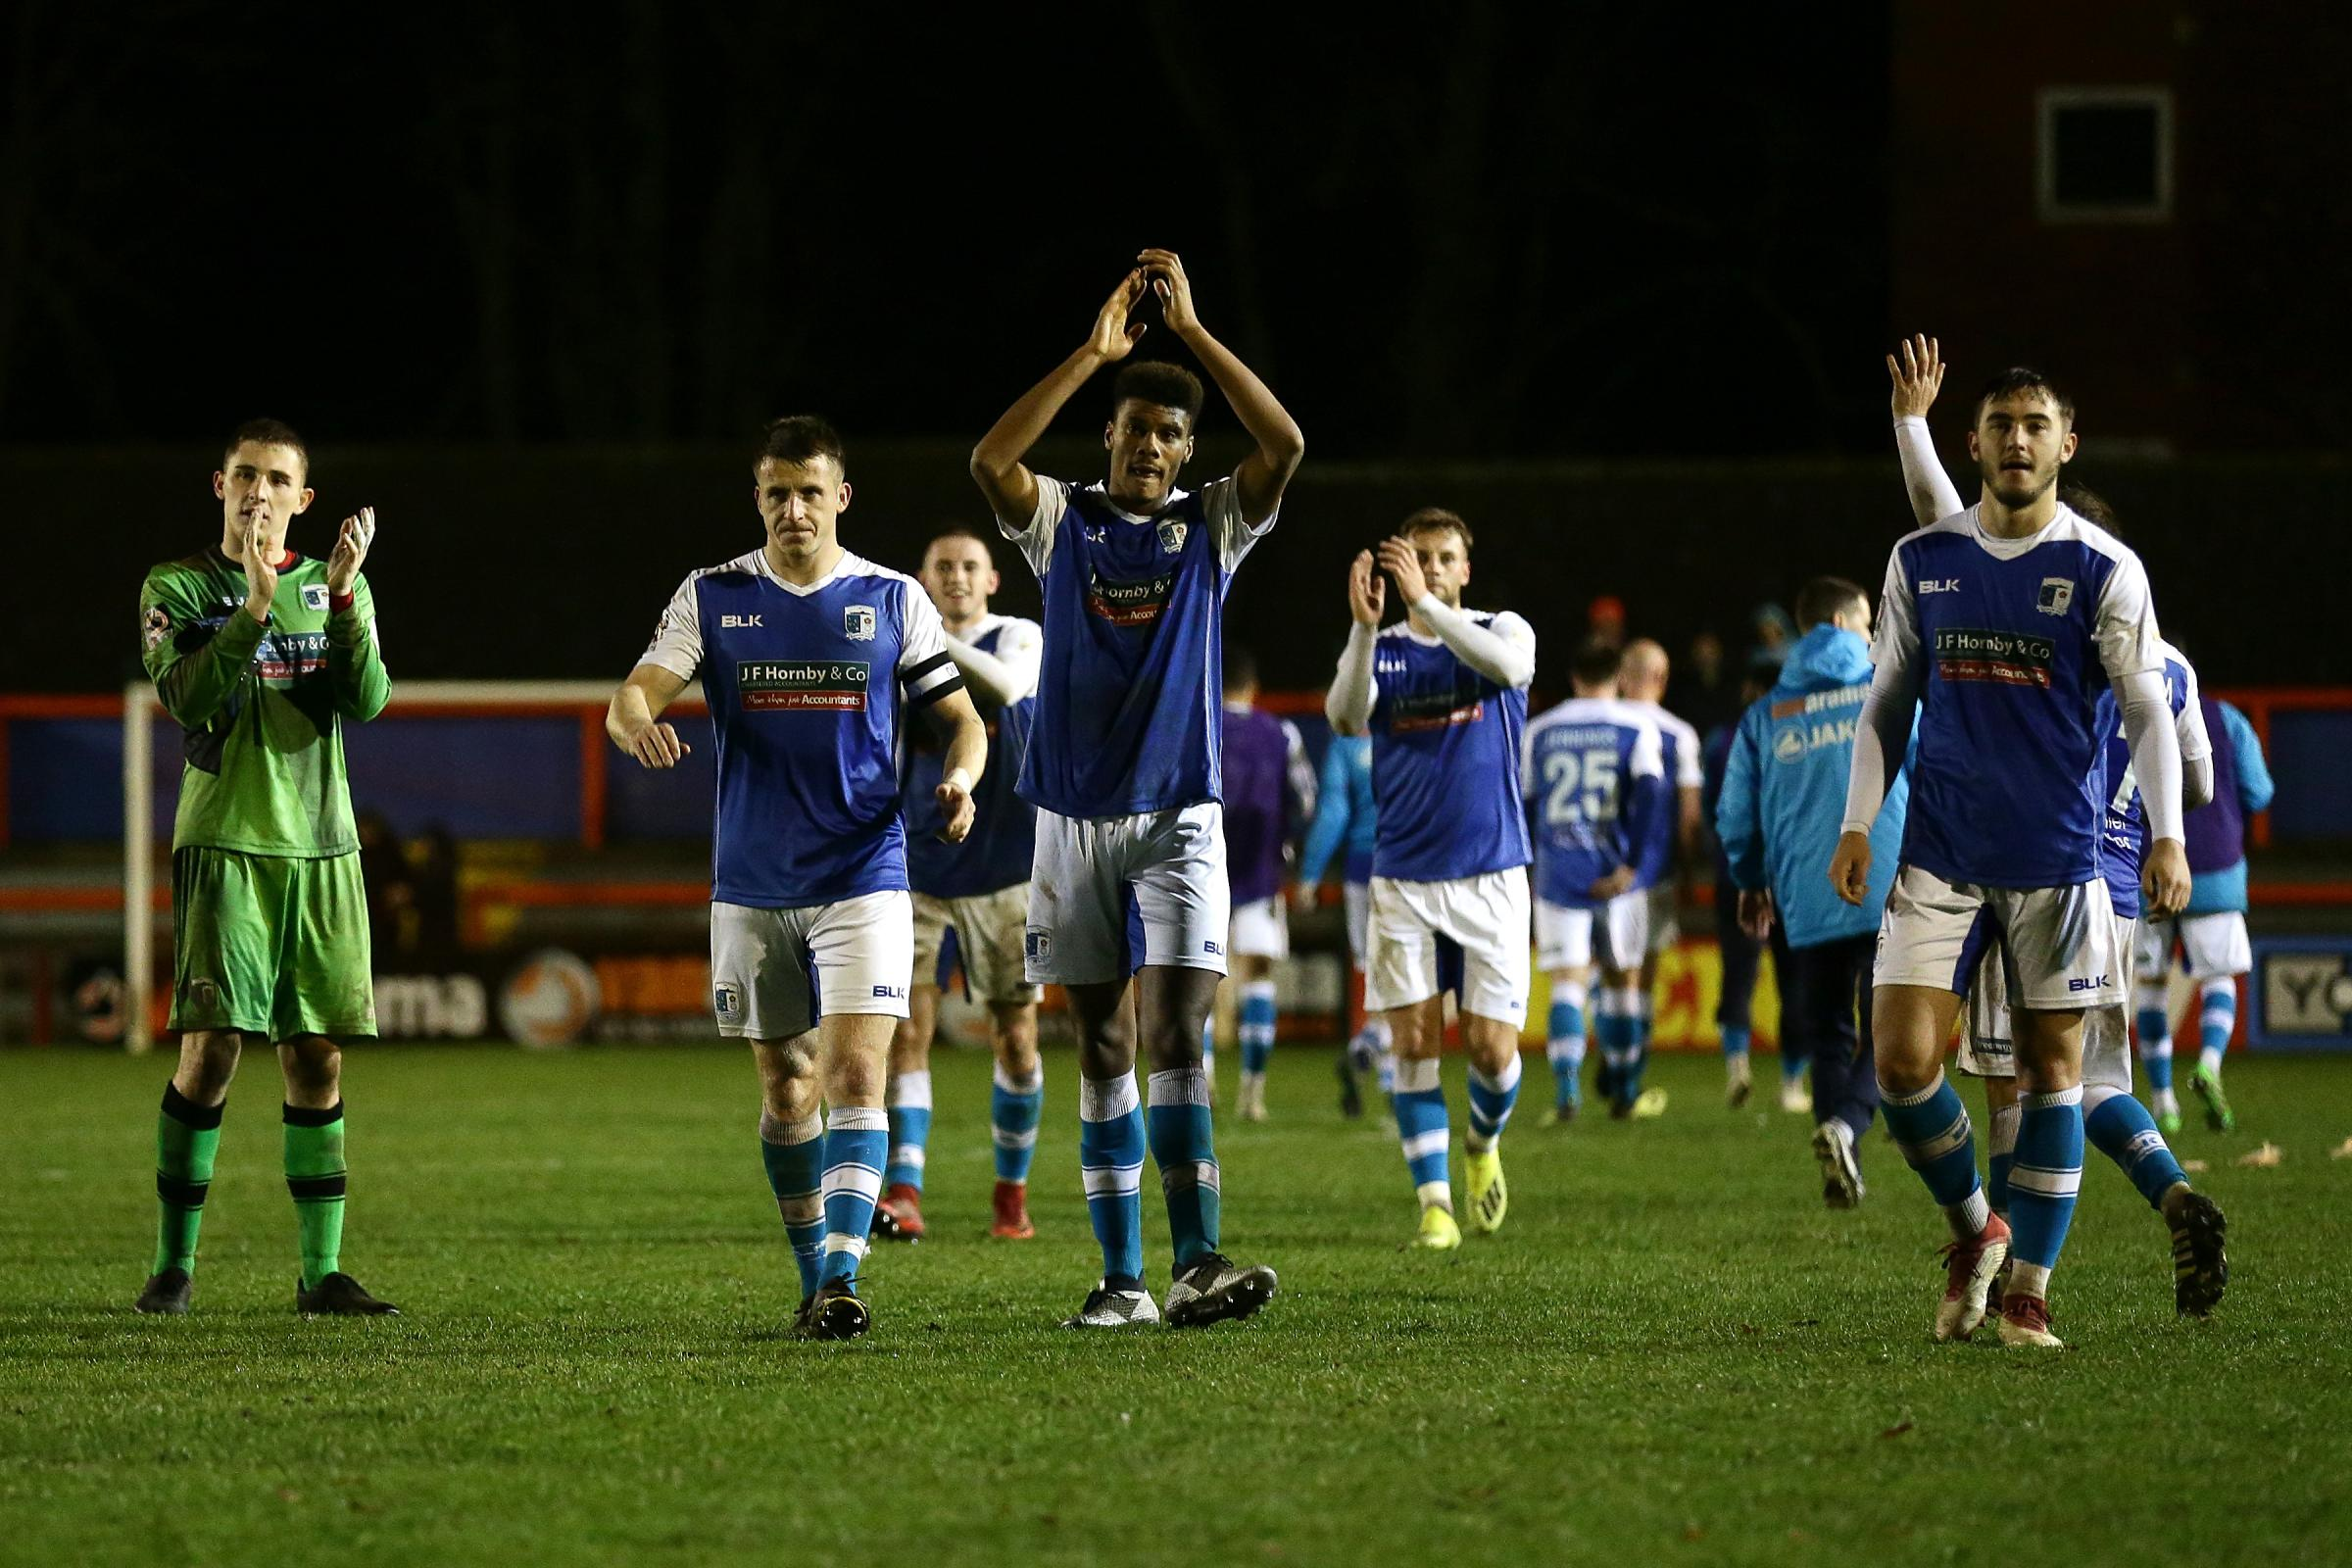 Barrow AFC's players go to thank their supporters after their victory at Braintree Town